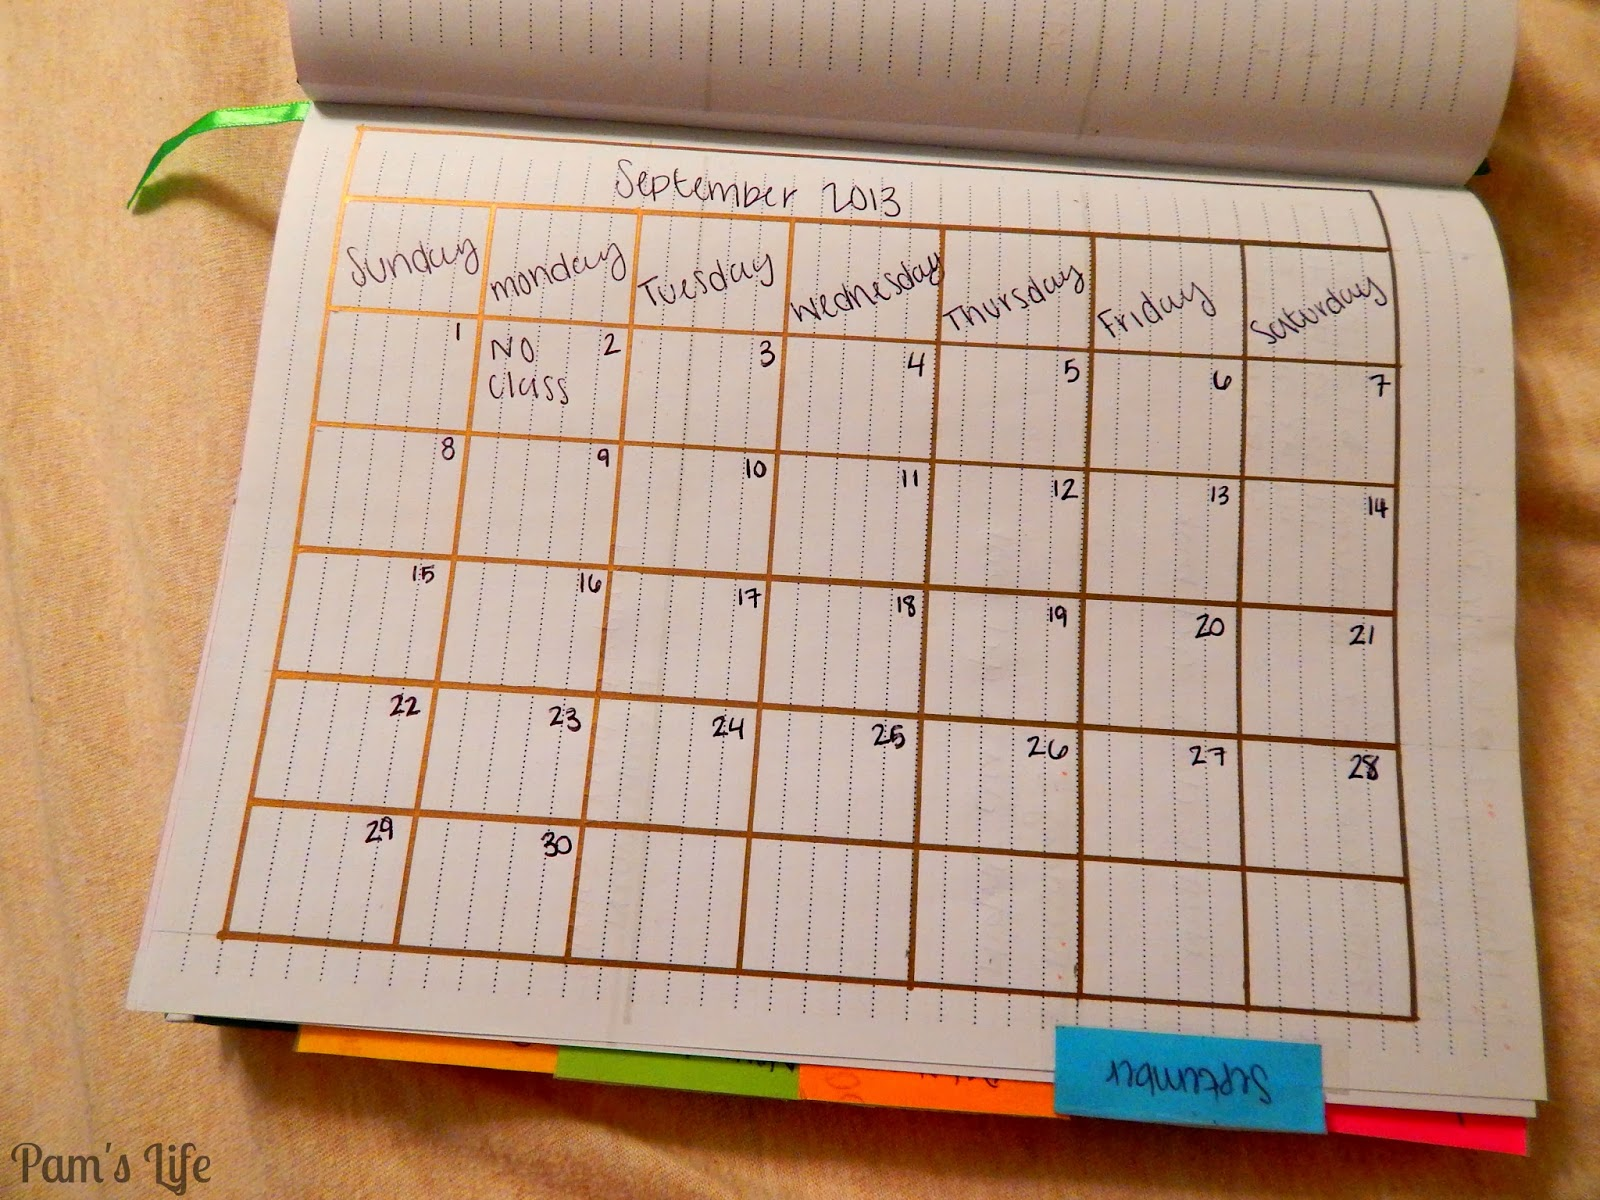 Diy Calendar Planner : Life calendar planner diy pictures to pin on pinterest